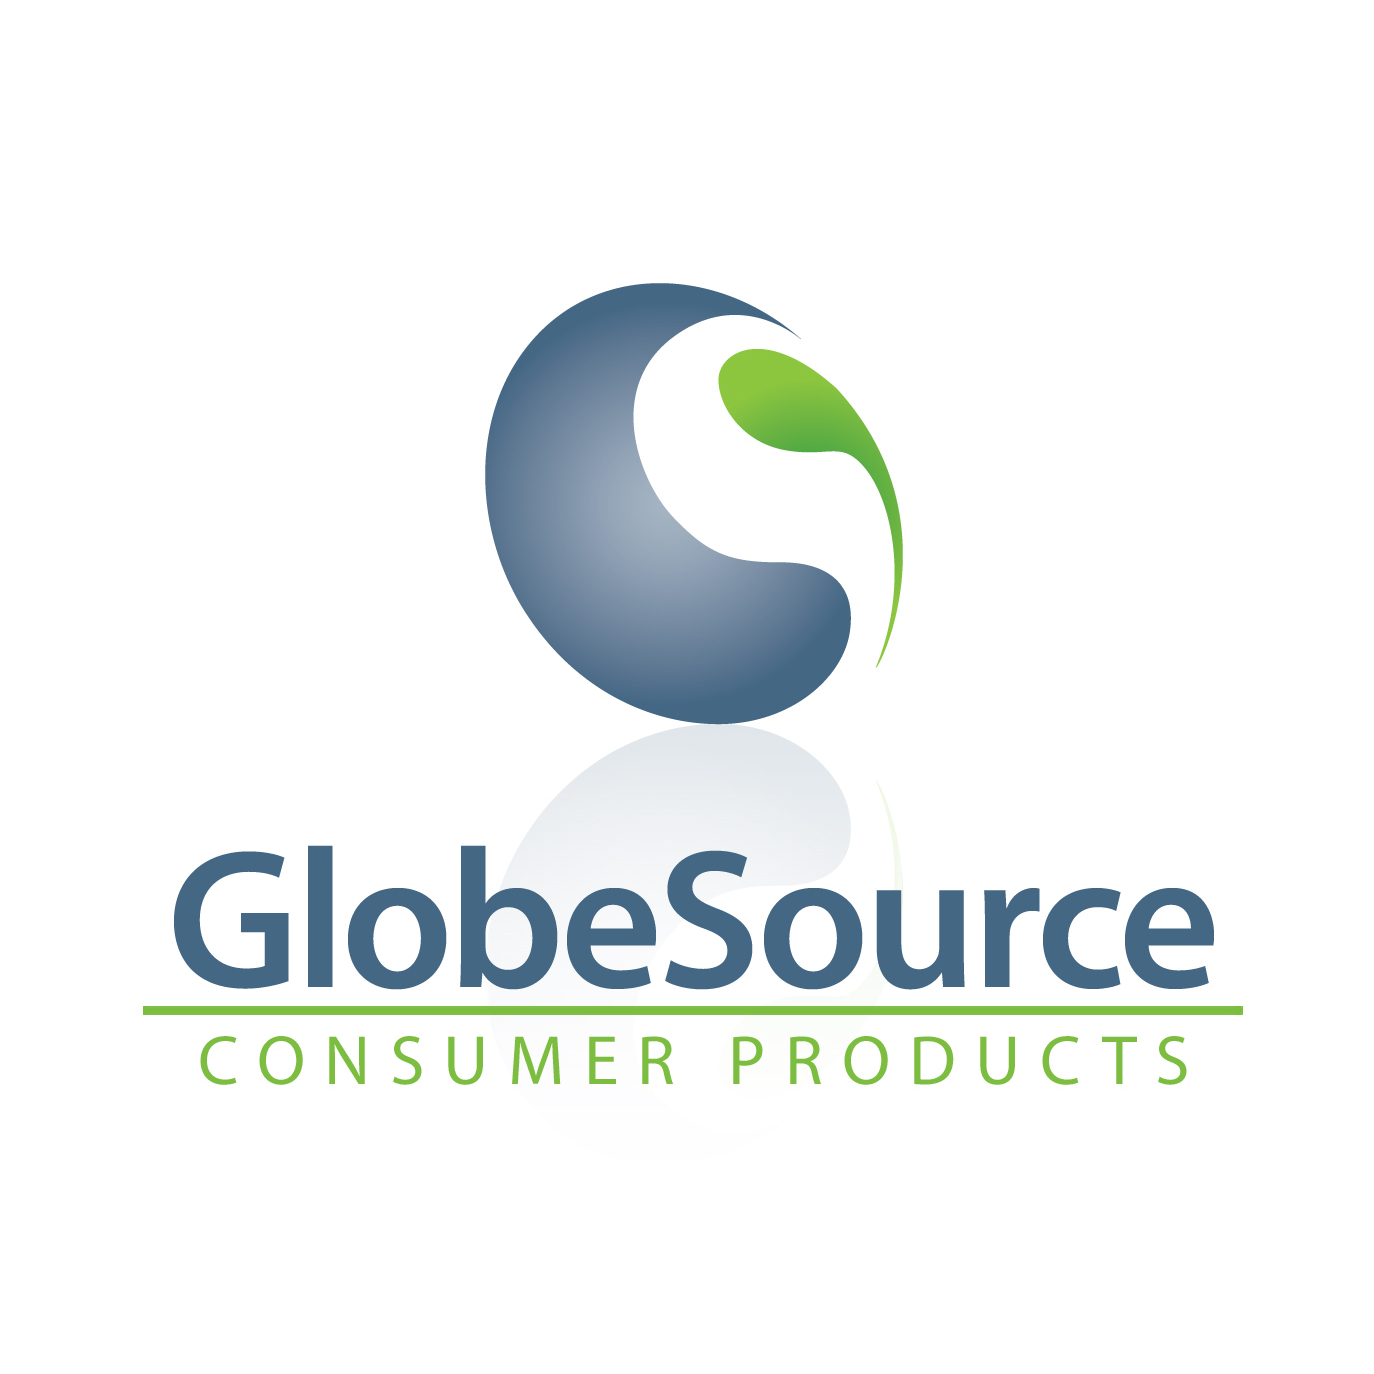 GlobeSource Consumer Products